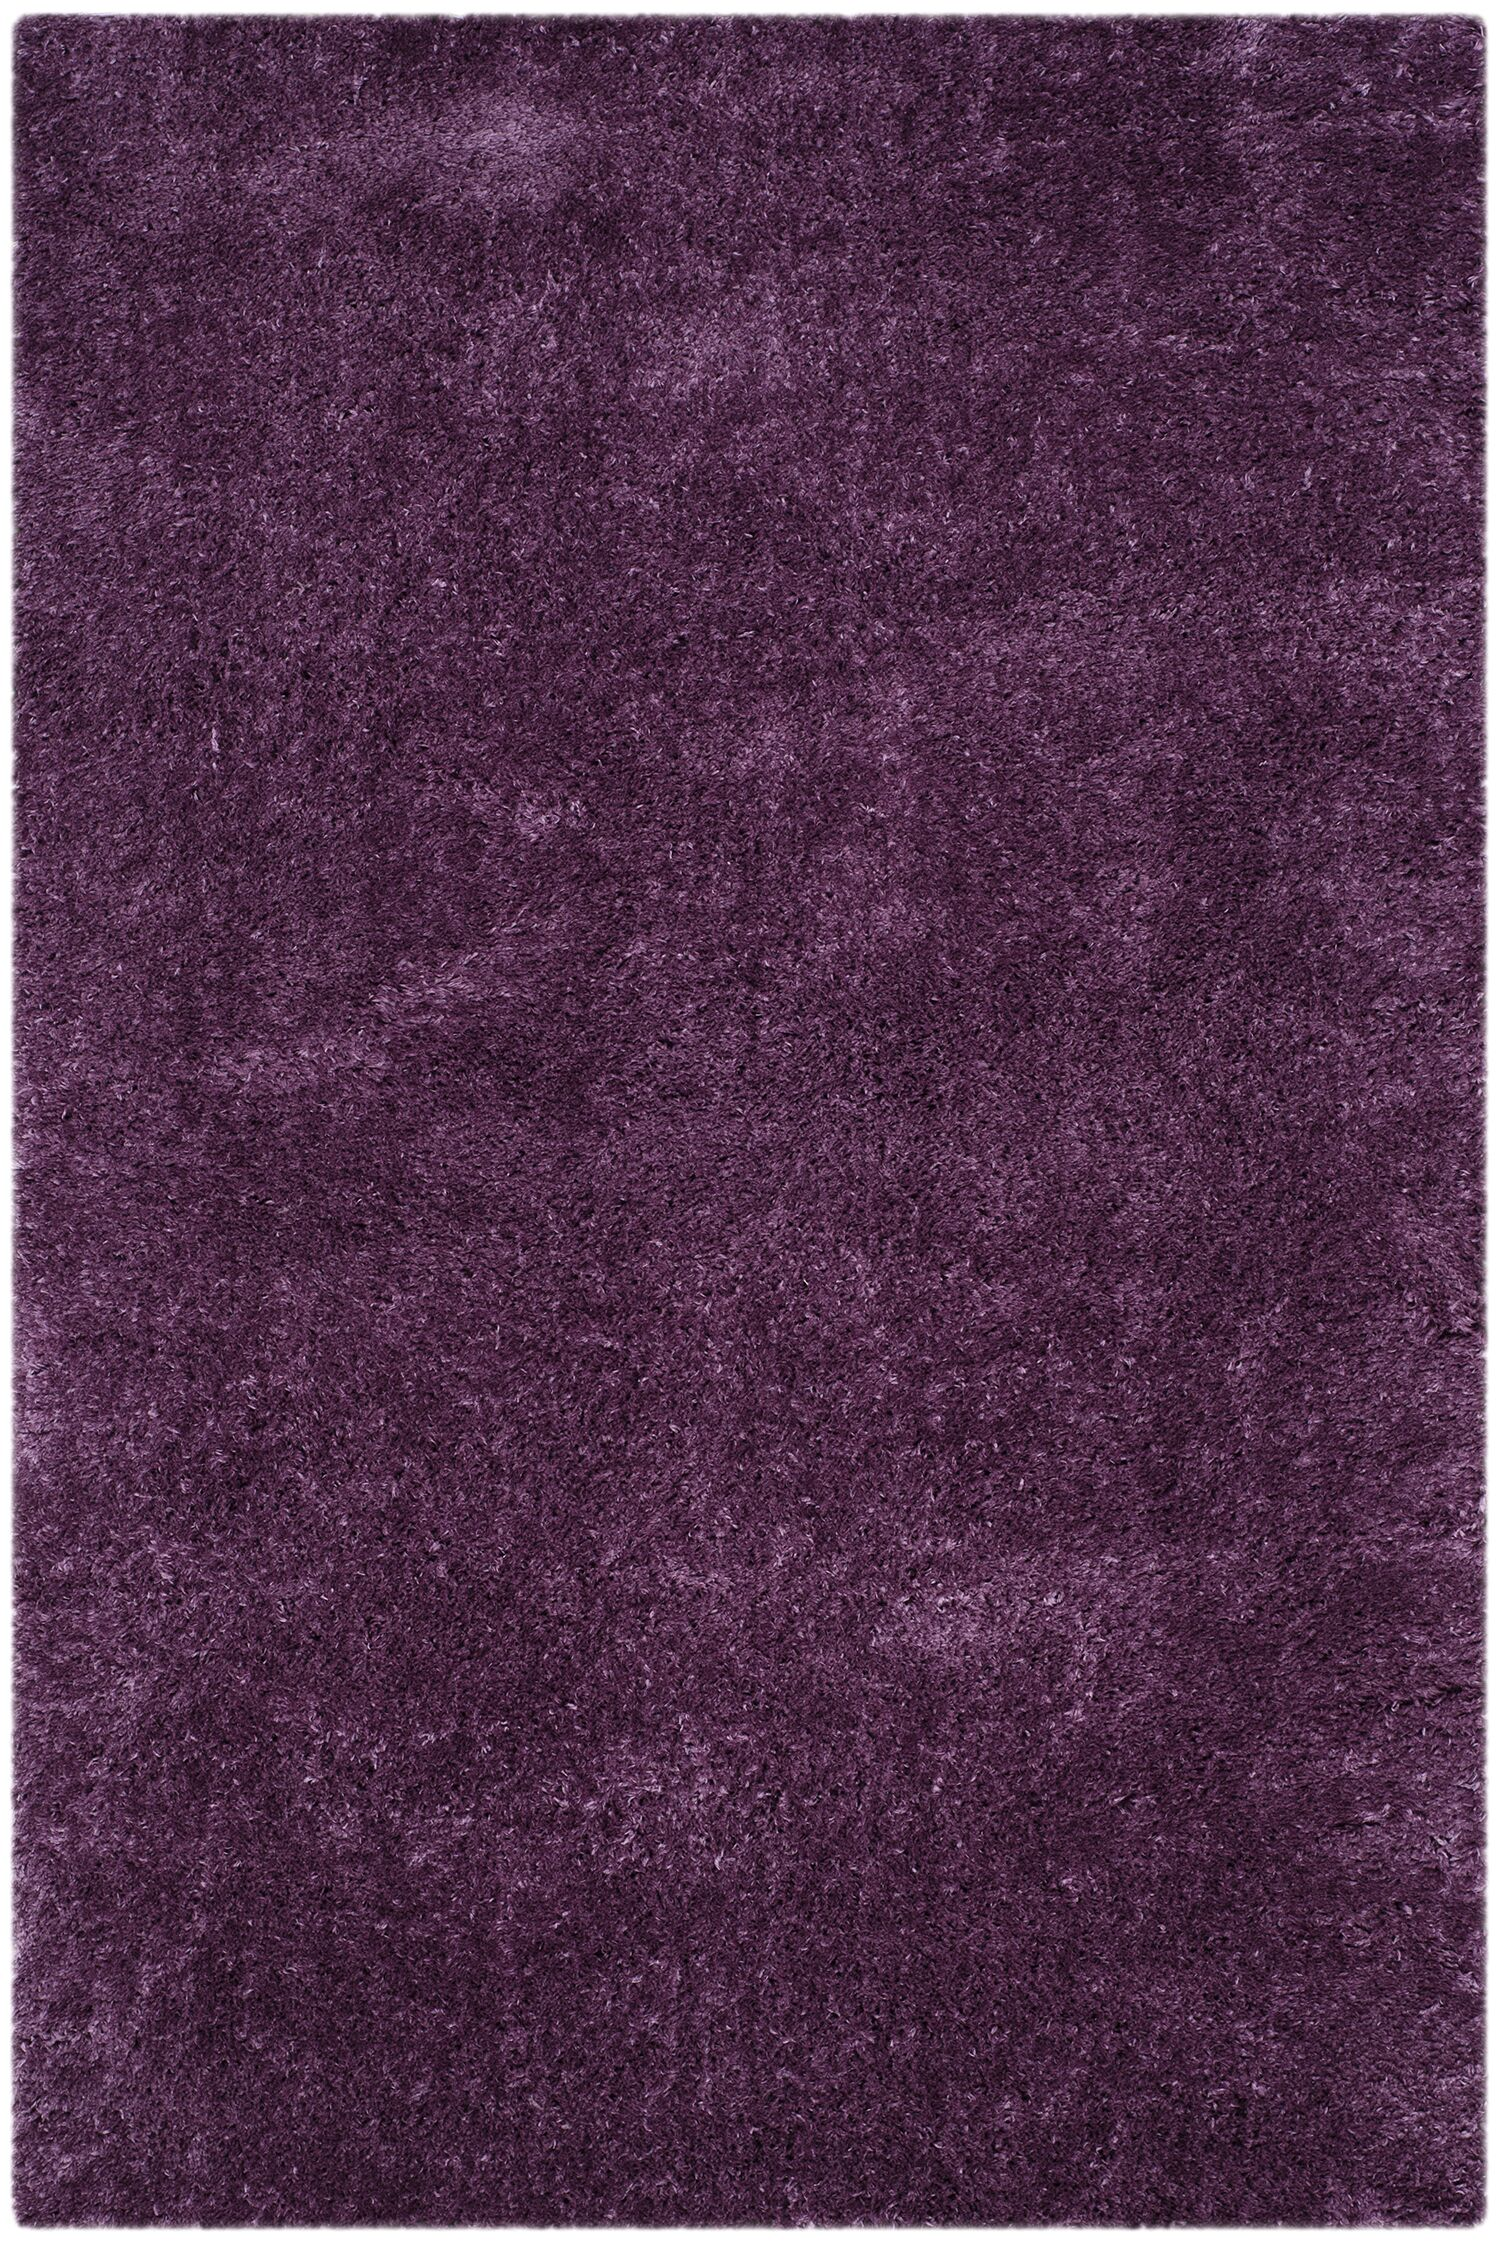 Zirconia Purple Area Rug Rug Size: Rectangle 5'1